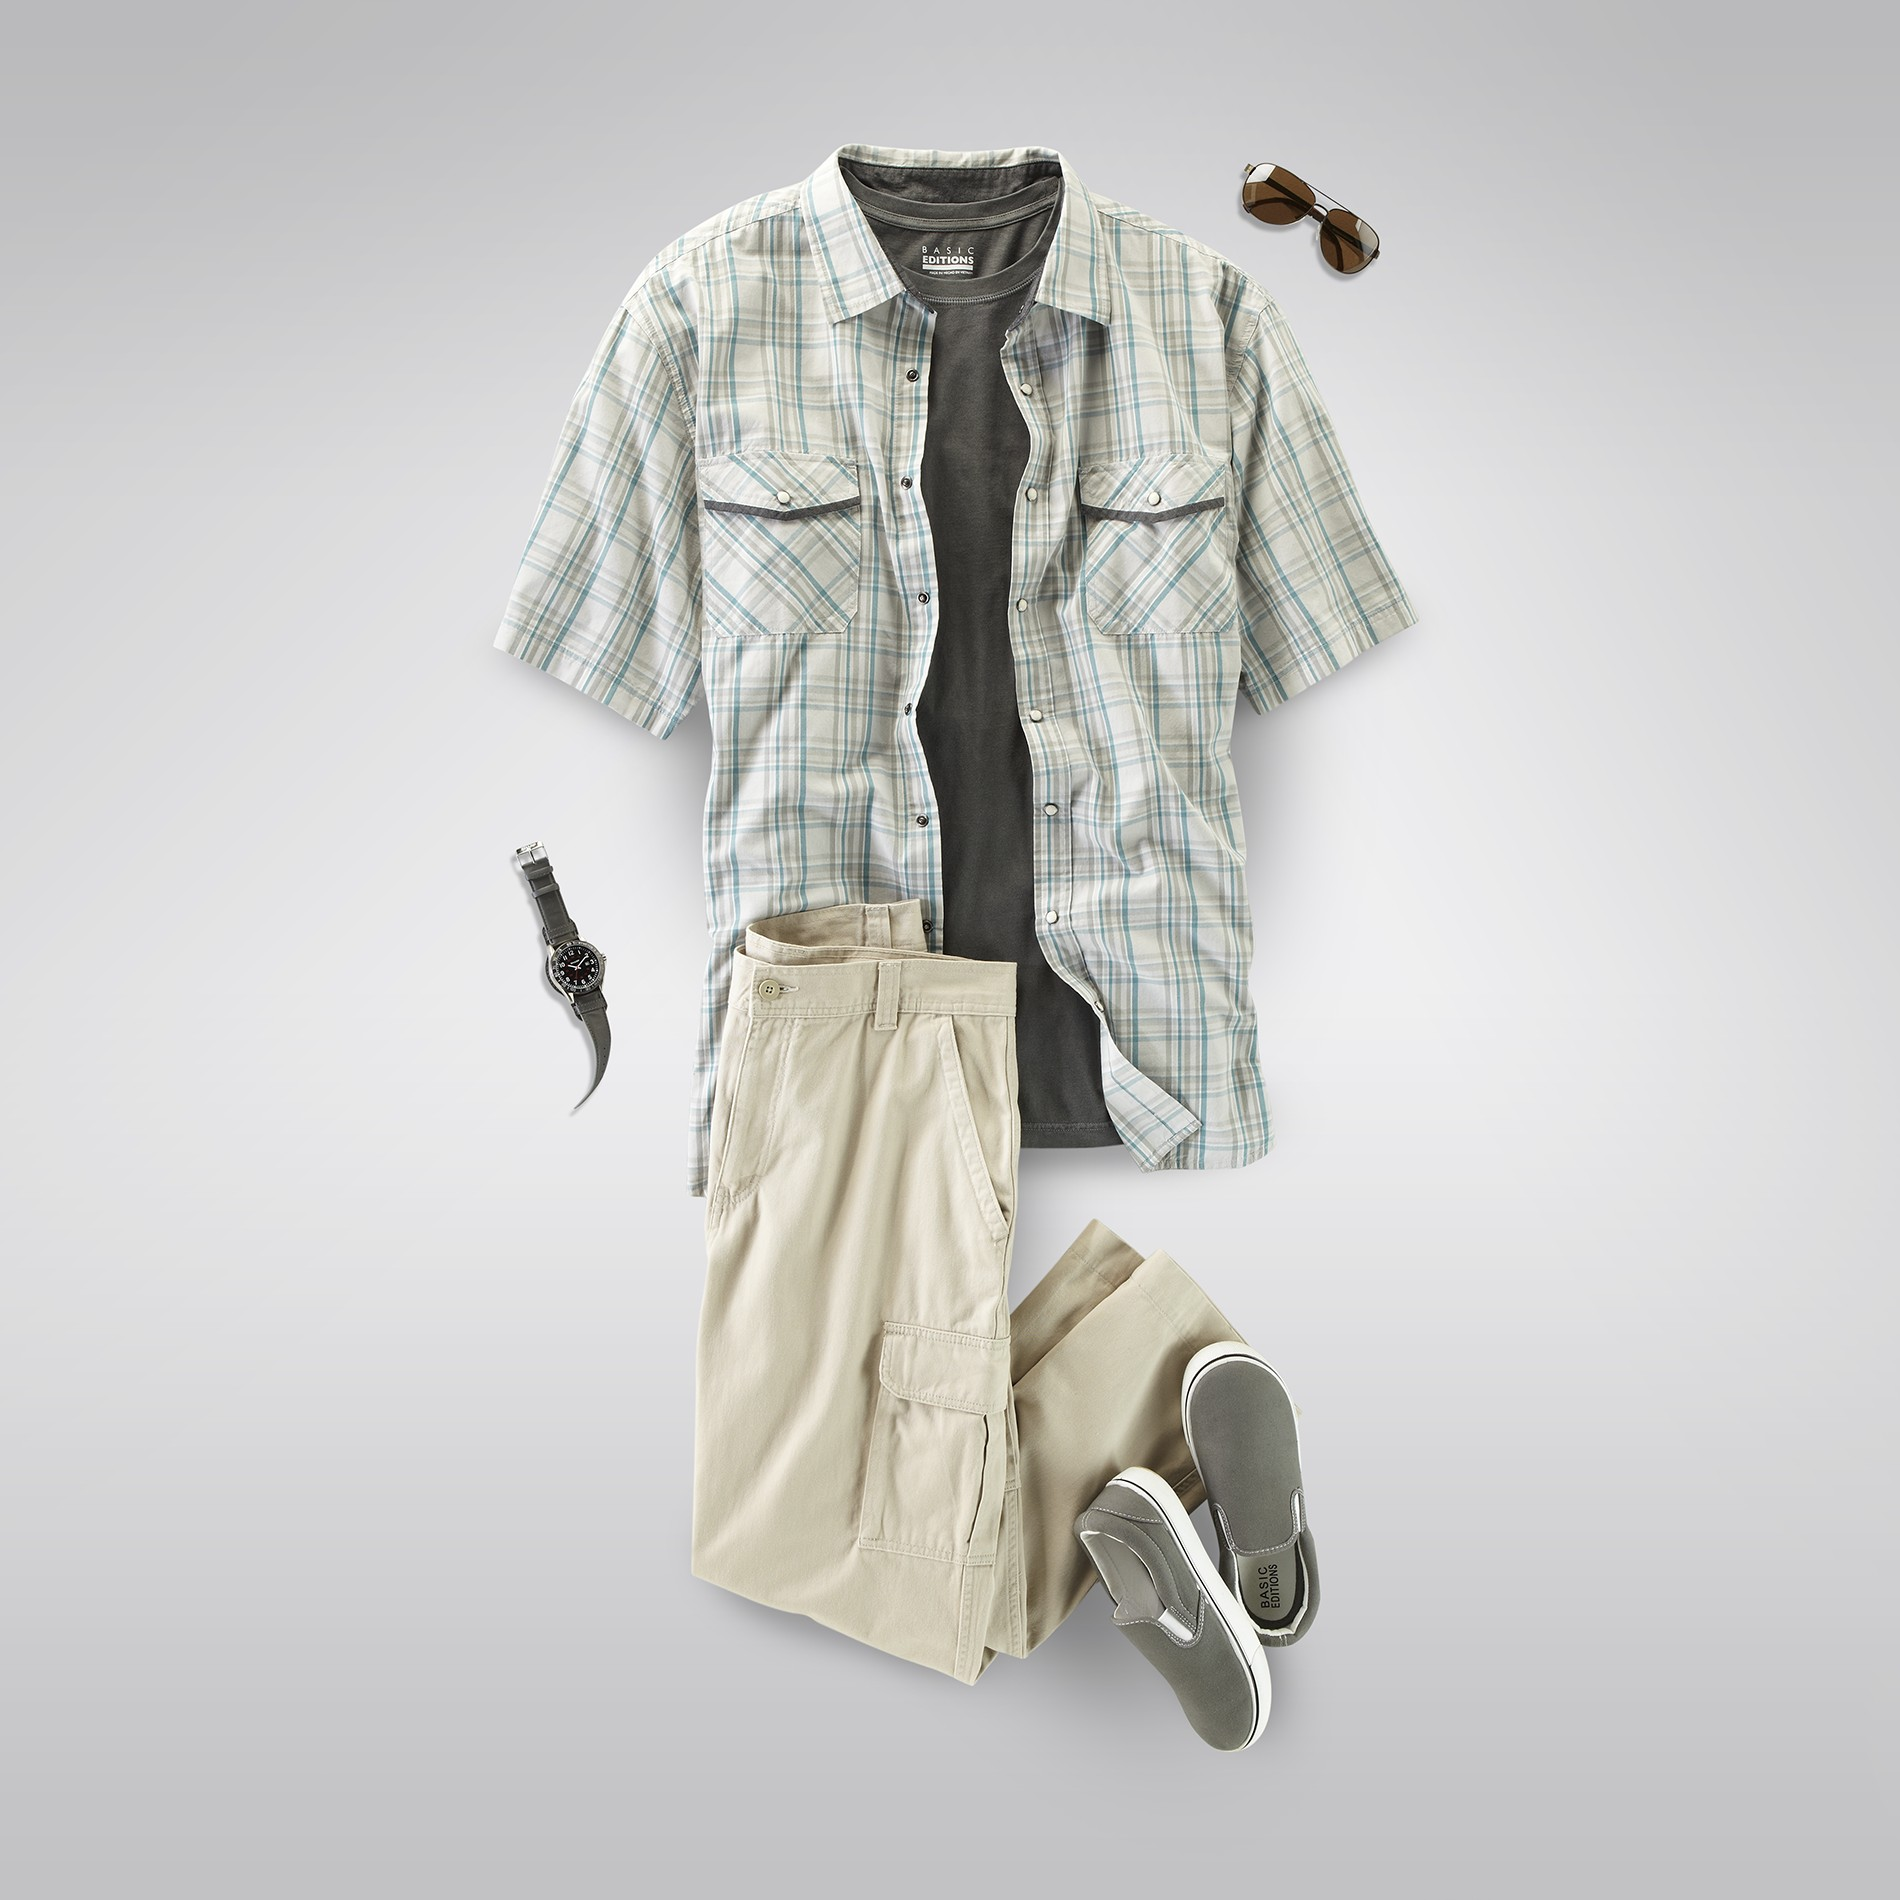 The Weekend Welcomer Outfit at Kmart.com